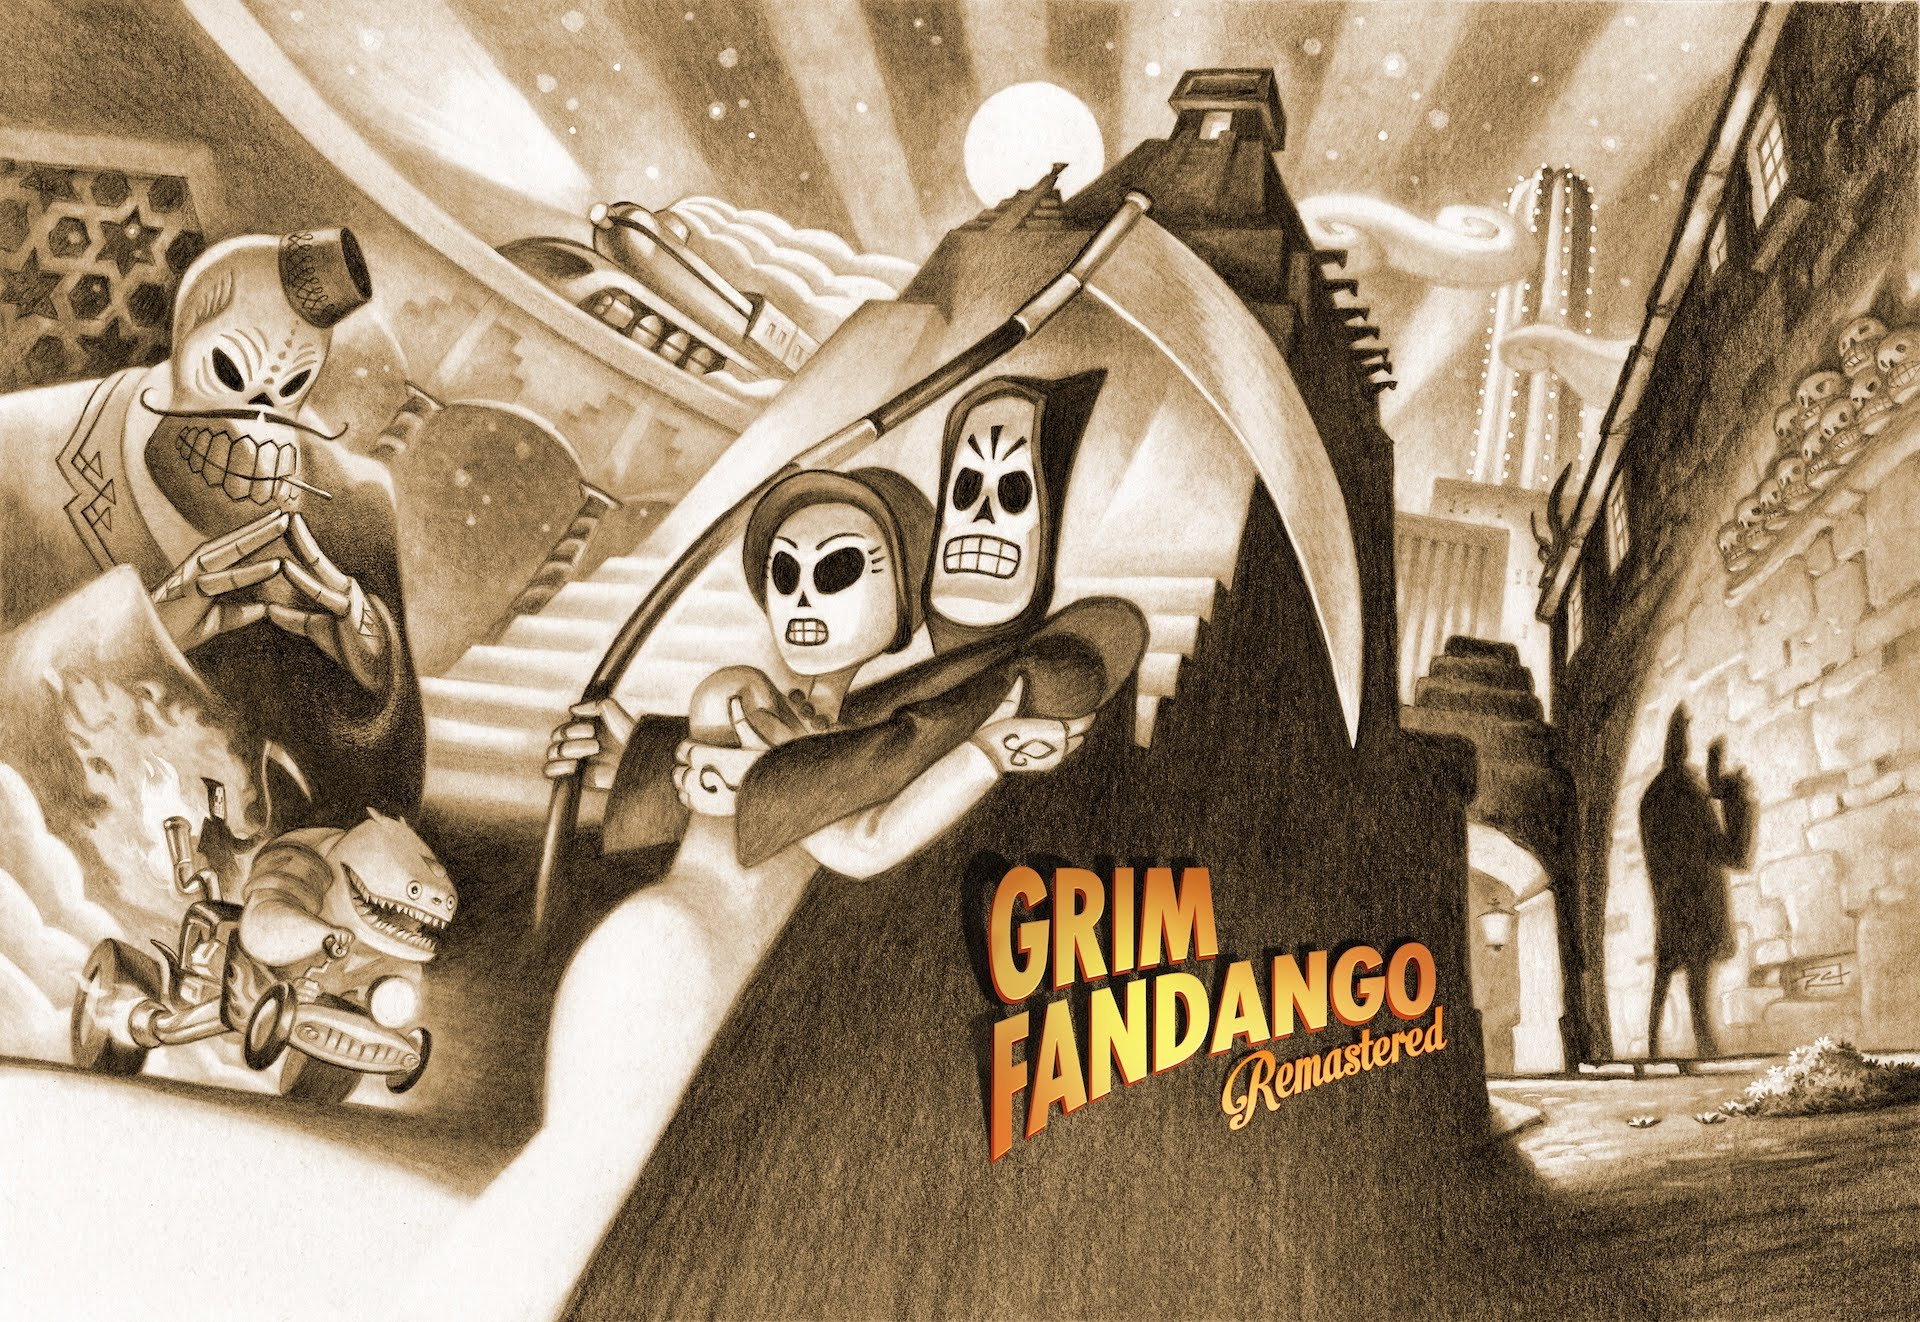 Grim Fandango Remastered is Double Fine's update of a beloved 1998 adventure game.